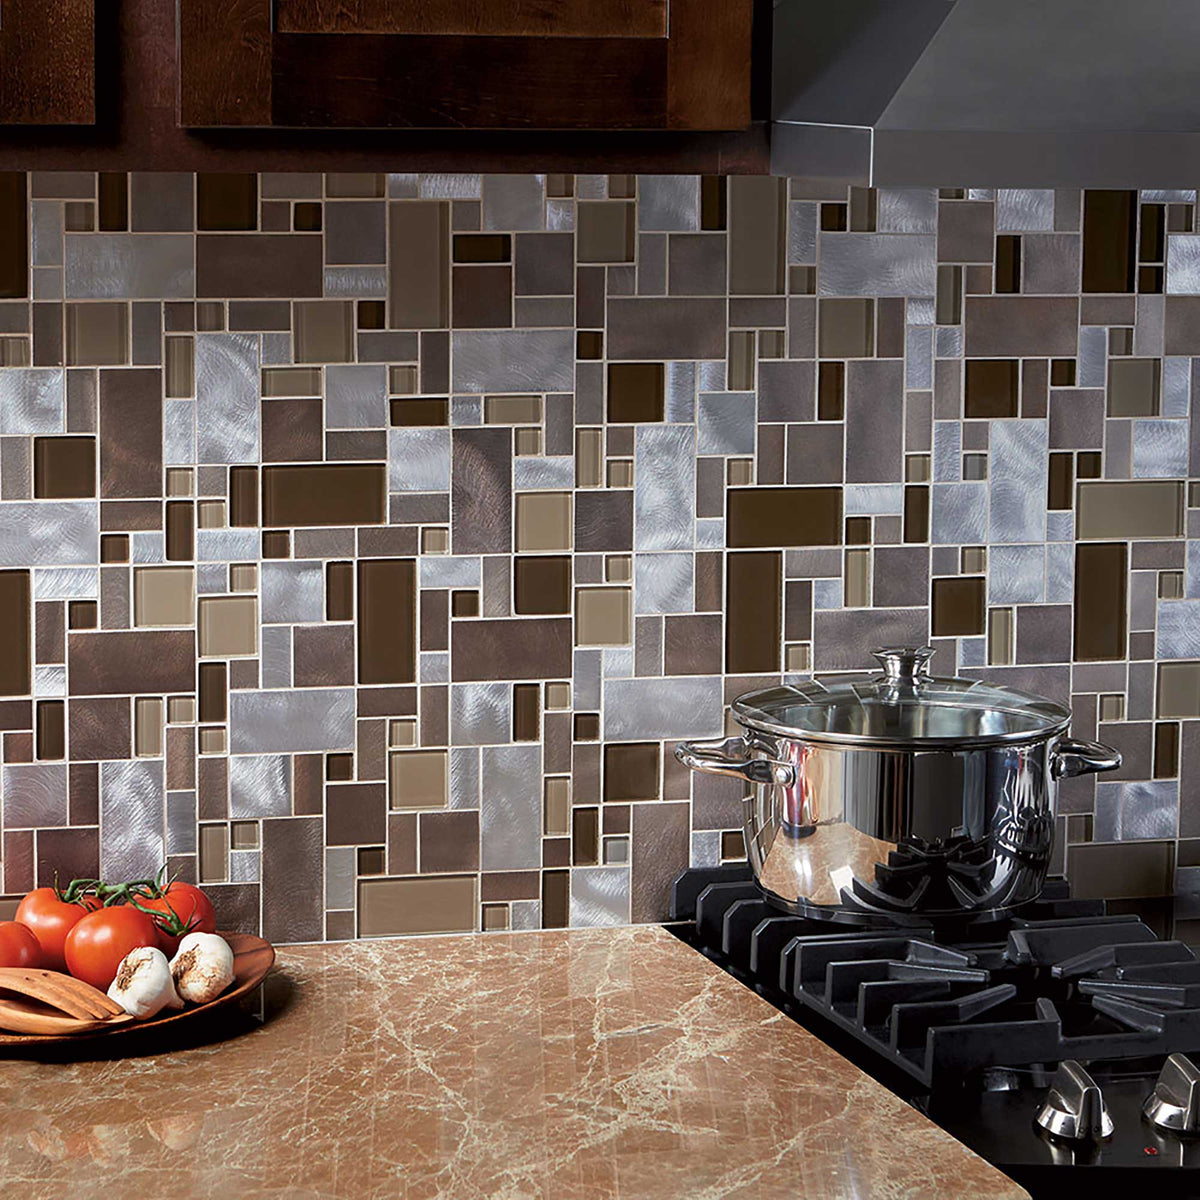 Metallic Mosaic Tiles Metallic Tiles Mosaic Tile Outlet